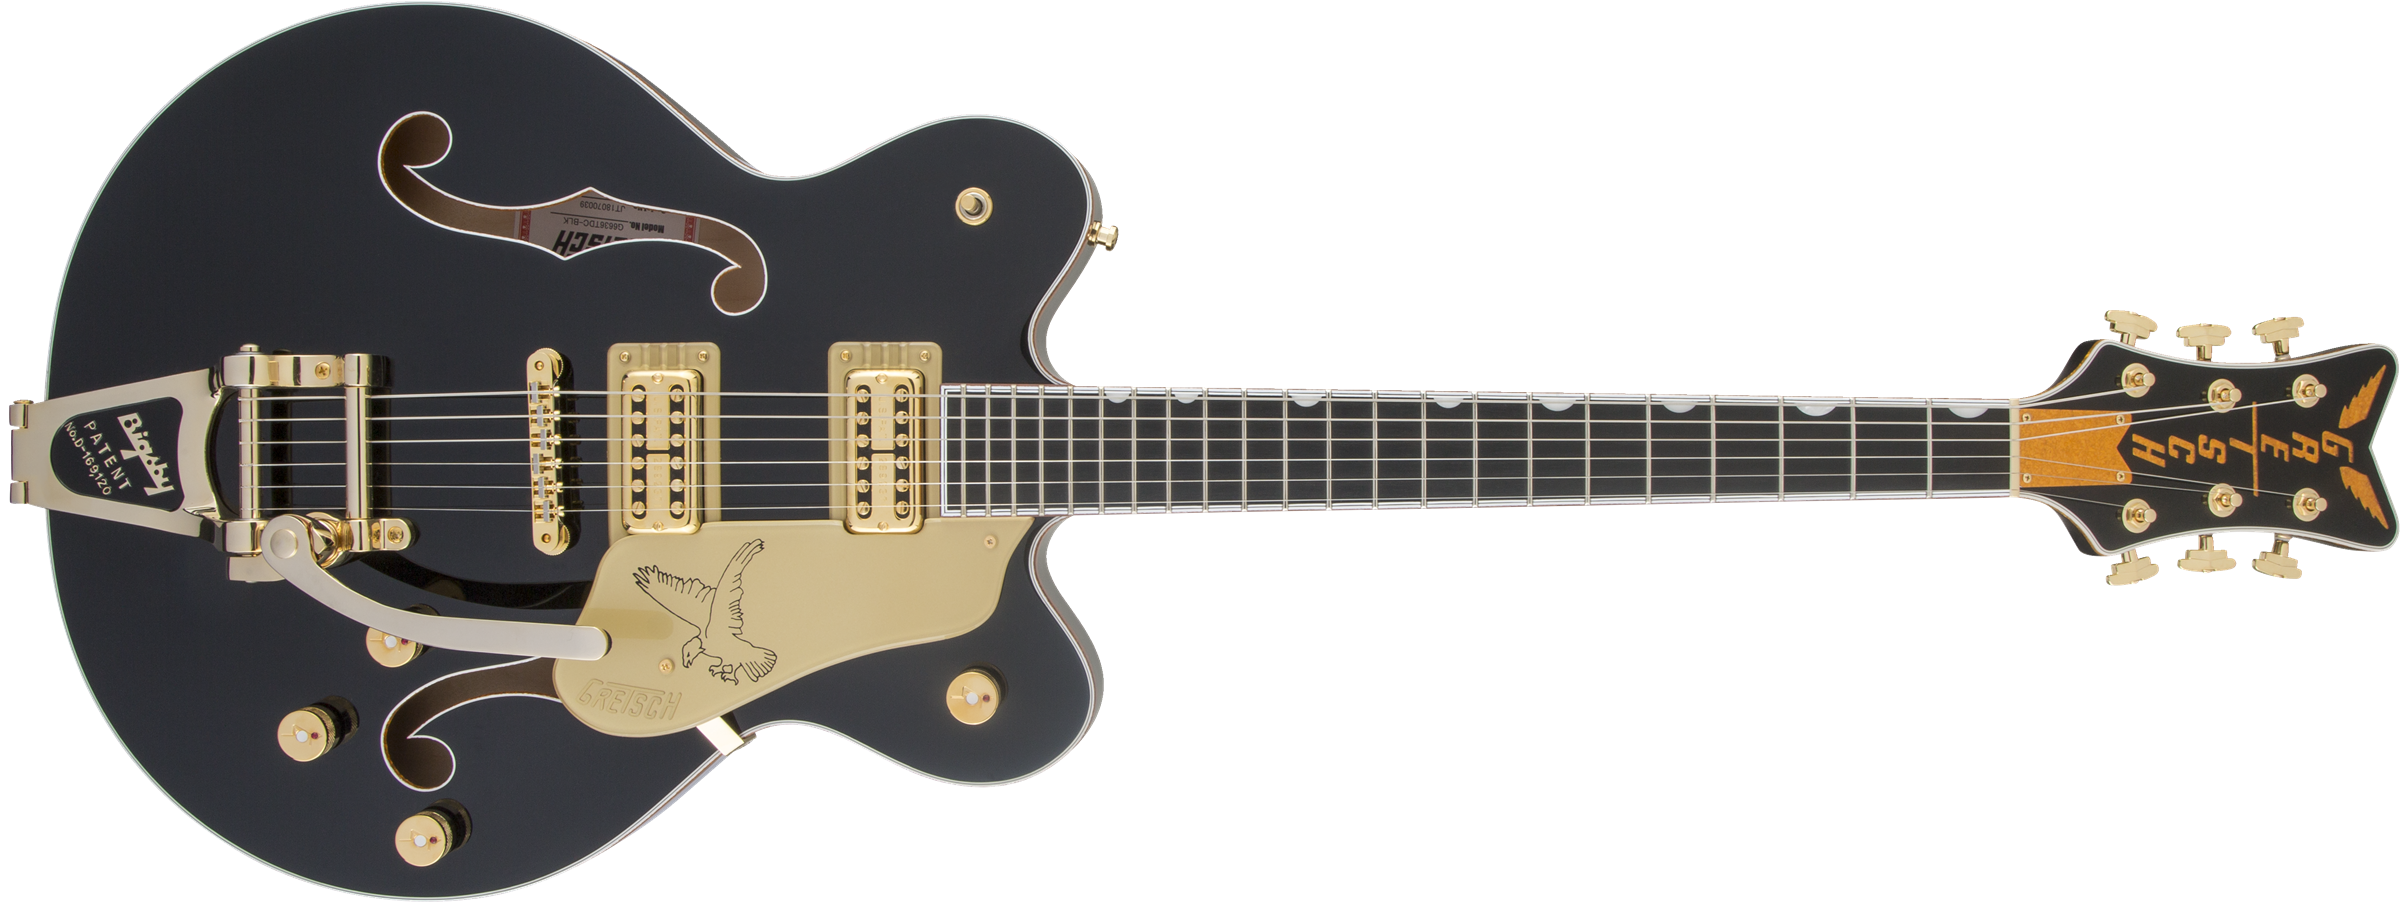 GRETSCH-G6636T-Players-Edition-Falcon-Center-Block-Double-Cut-with-String-Thru-Bigsby-FilterTron-Pickups-Black-sku-571002971